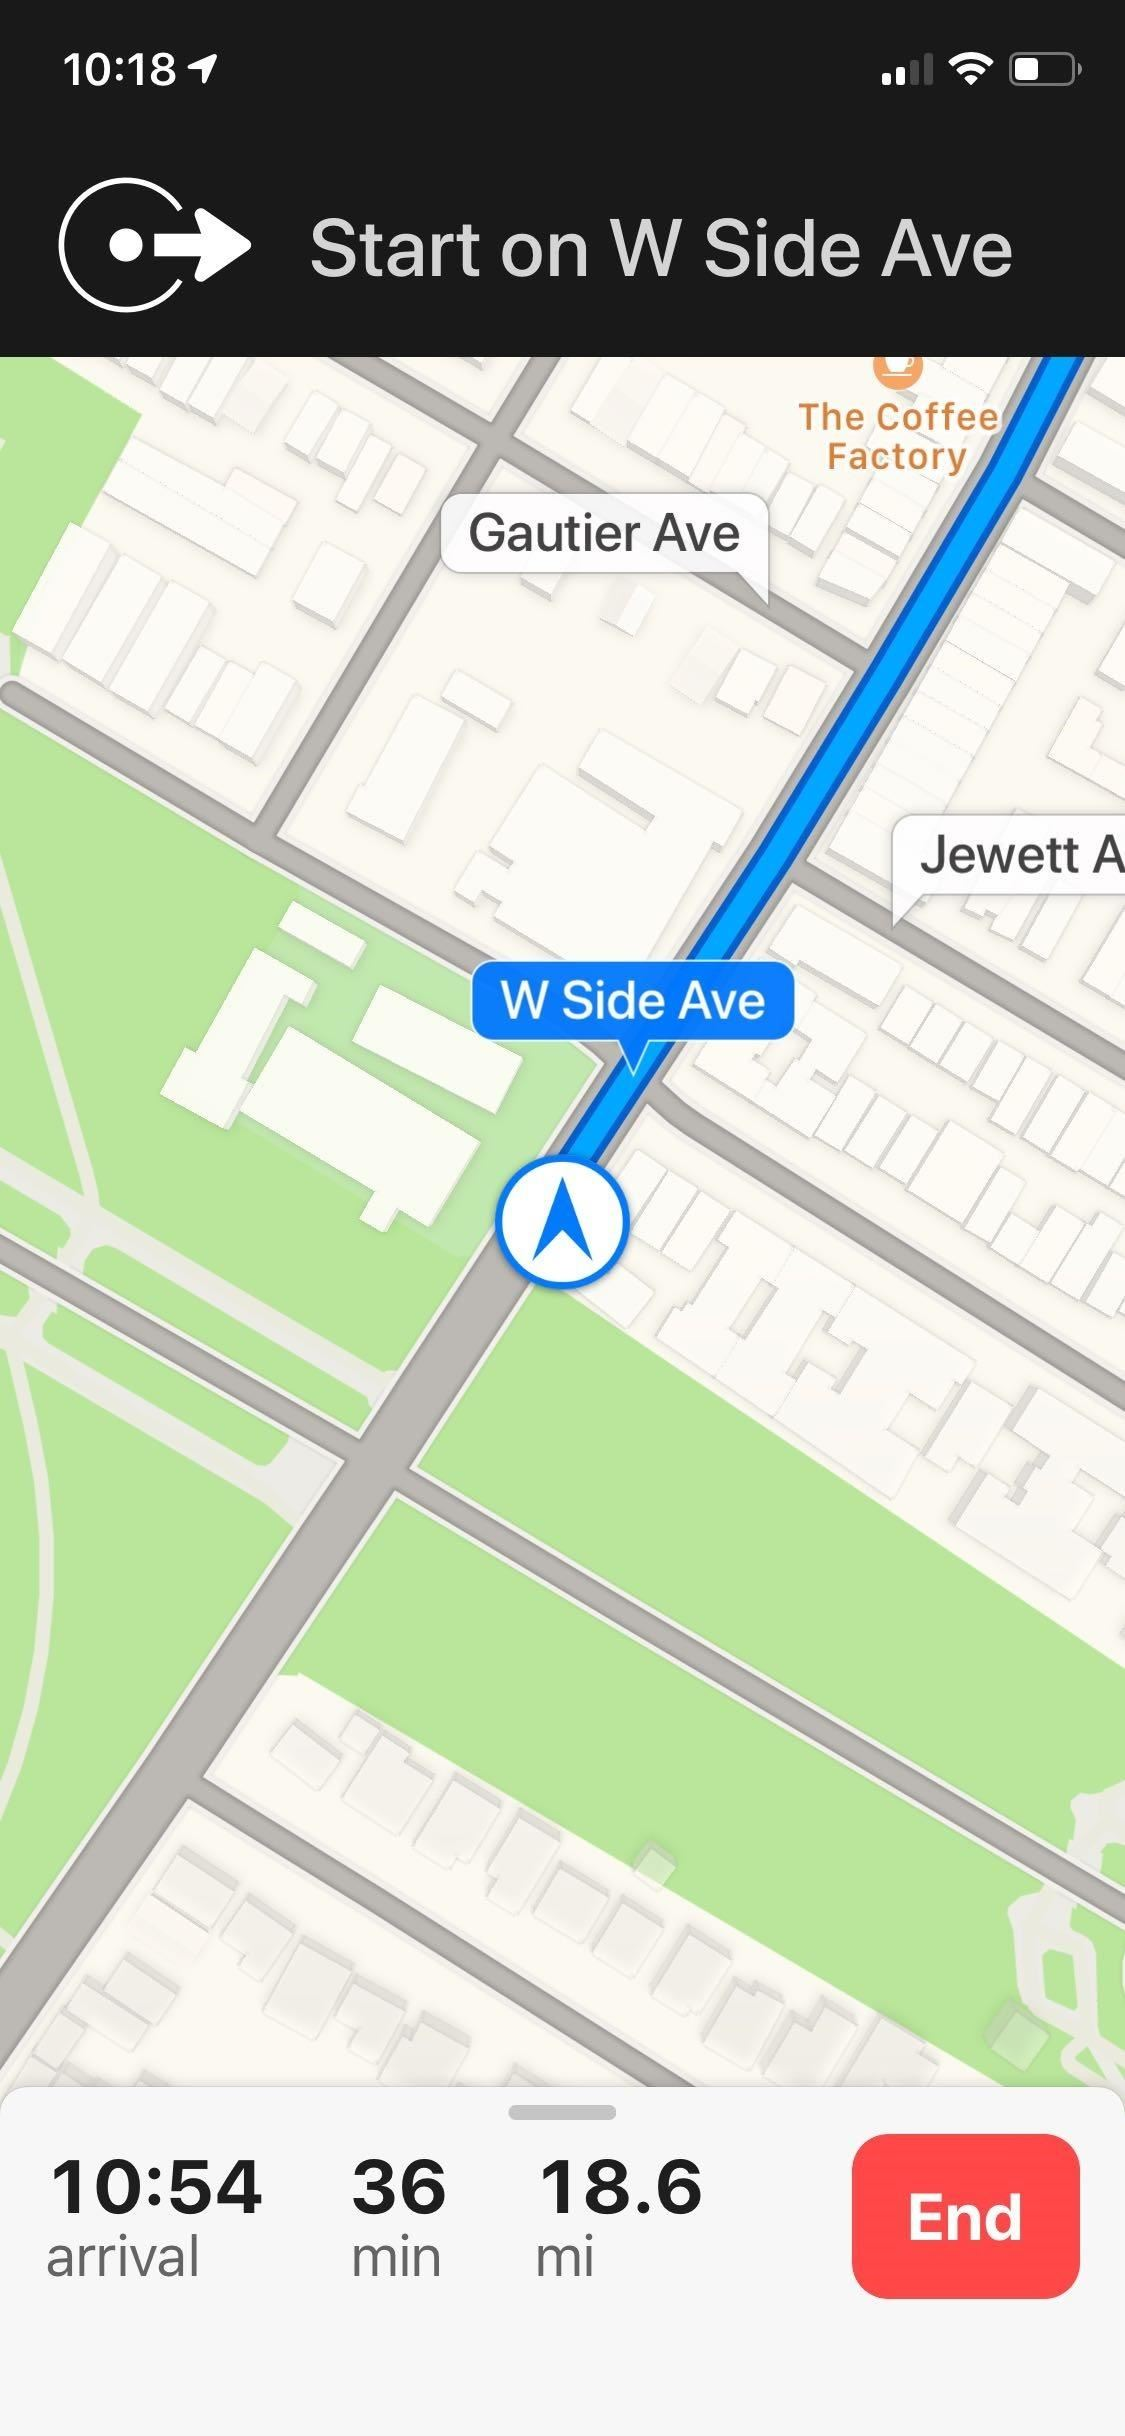 How to Customize Navigation Prompts on Apple Maps for Clearer Spoken Directions